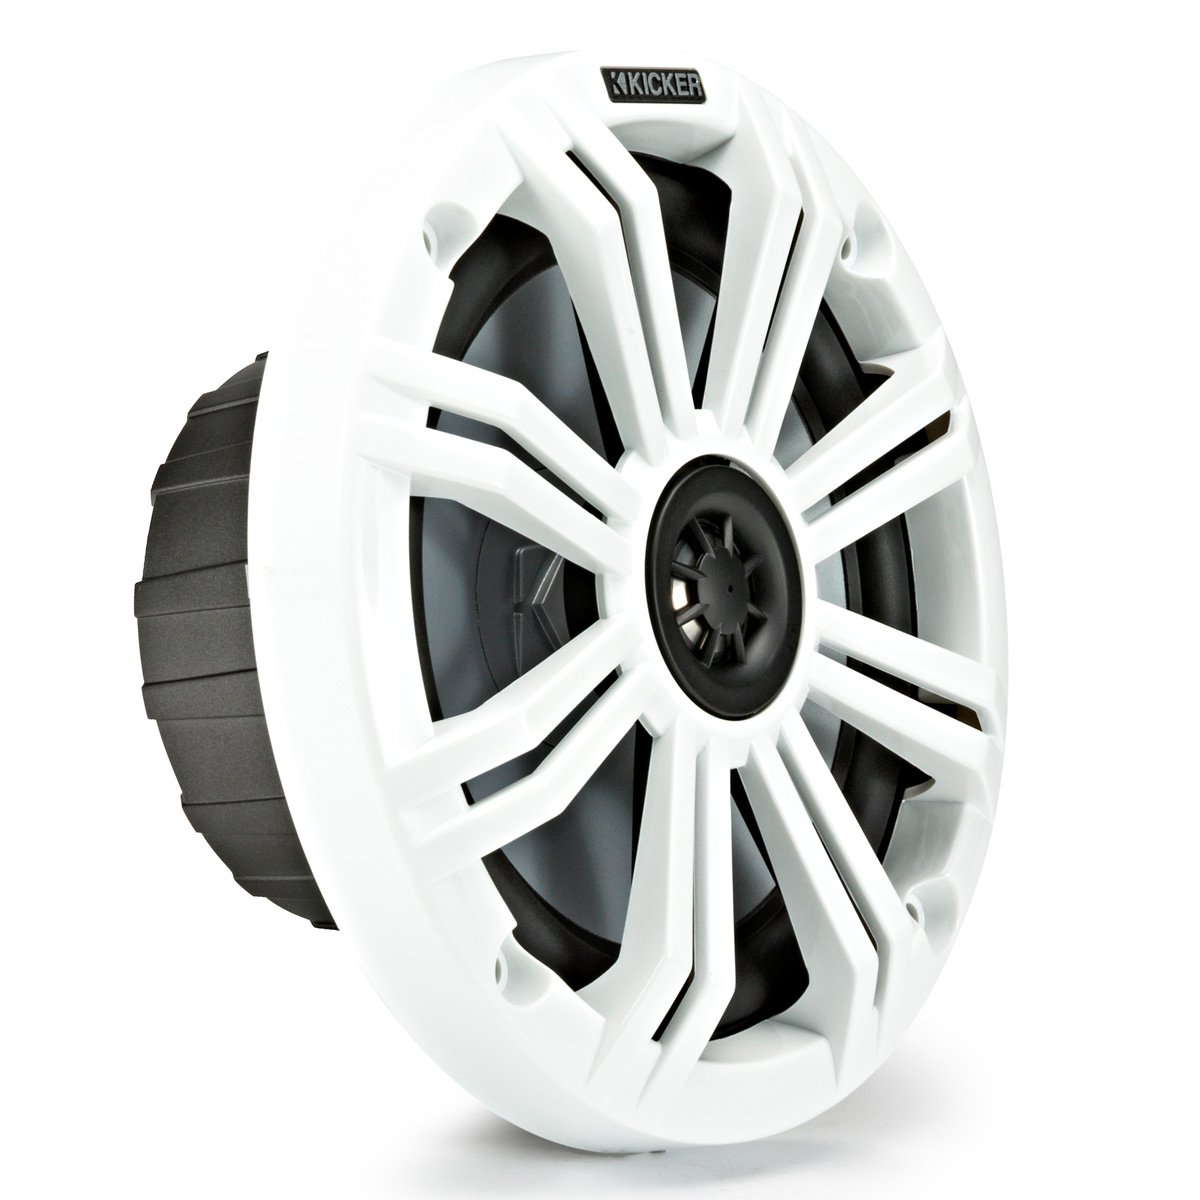 Kicker KM65 6.5-Inch (165mm) Marine Coaxial Speakers with 3/4-Inch (20mm) Tweeters, 4-Ohm, Charcoal and White Grilles by Kicker (Image #4)